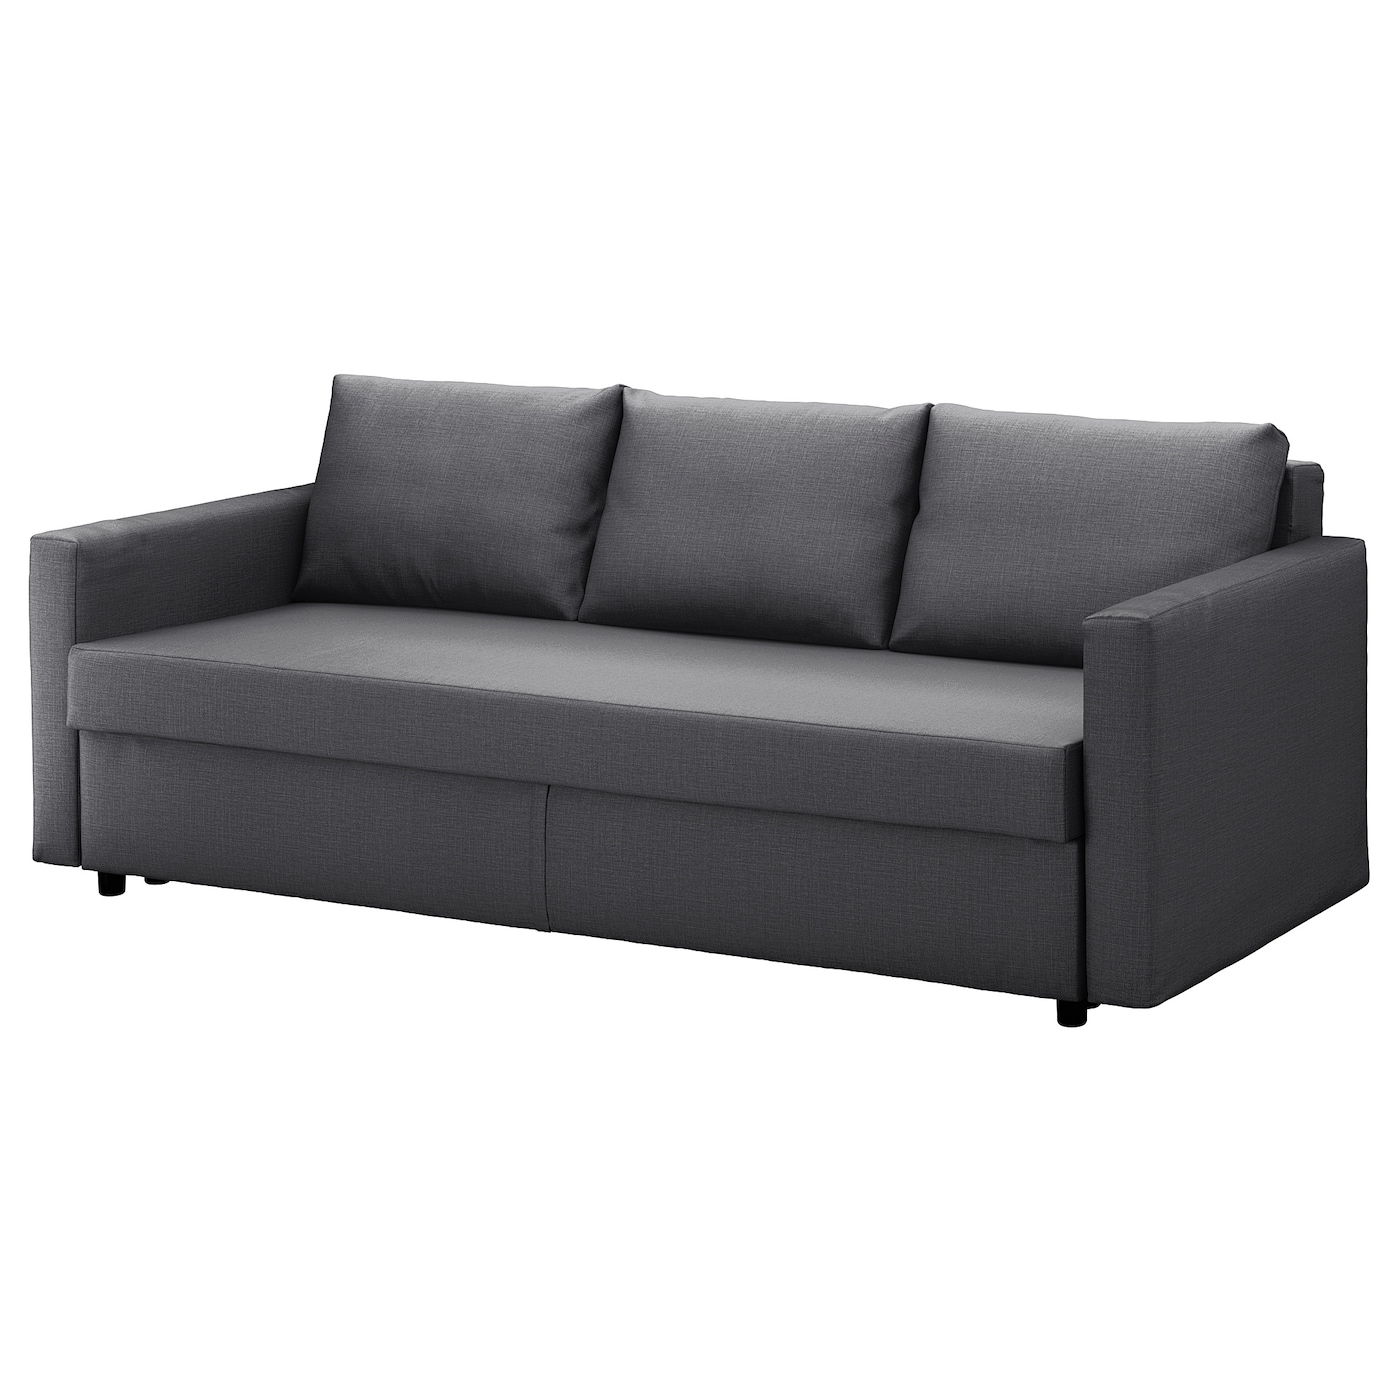 - FRIHETEN Sleeper Sofa, Skiftebo Dark Gray - IKEA